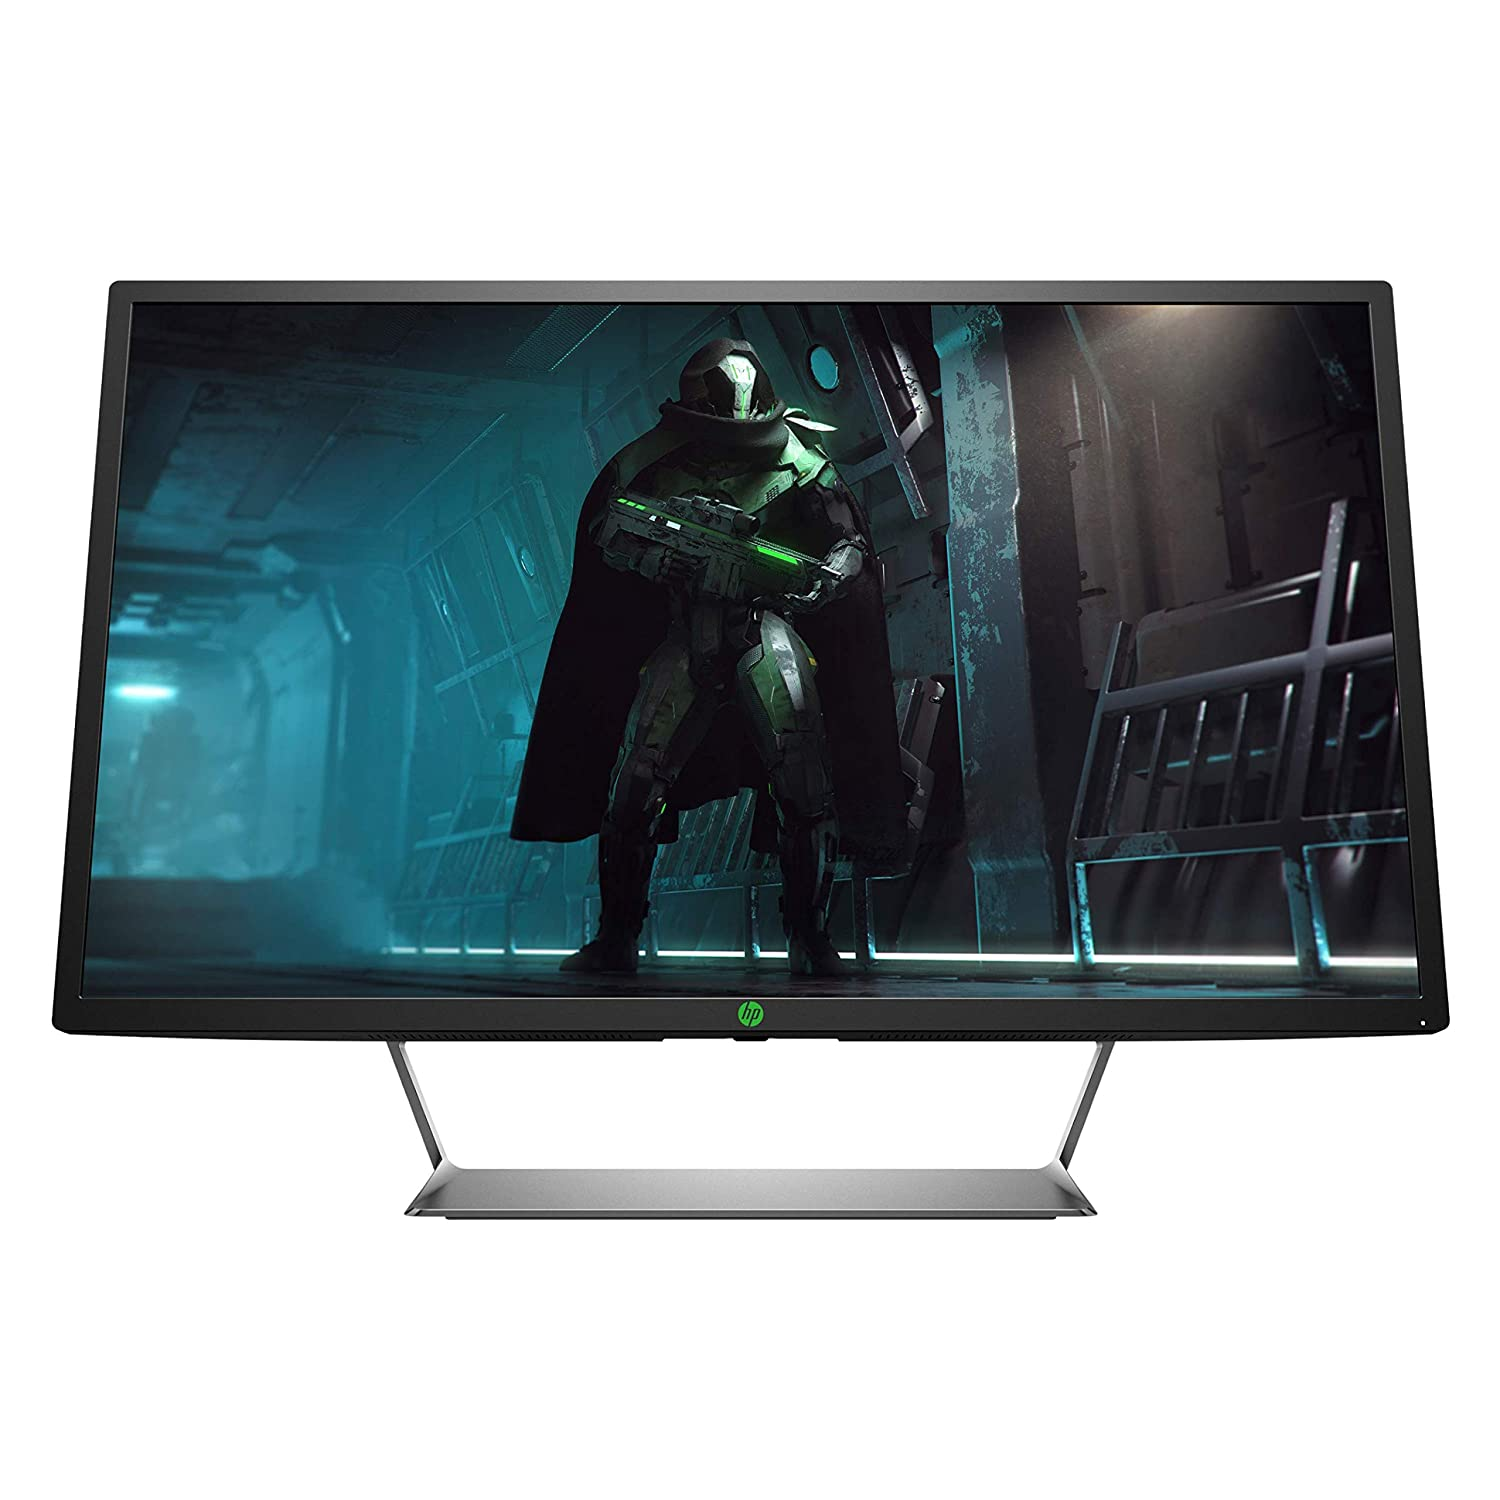 HP Pavilion Gaming 32-inch QHD Monitor with DisplayHDR 600 and AMD Freesync Technology Black